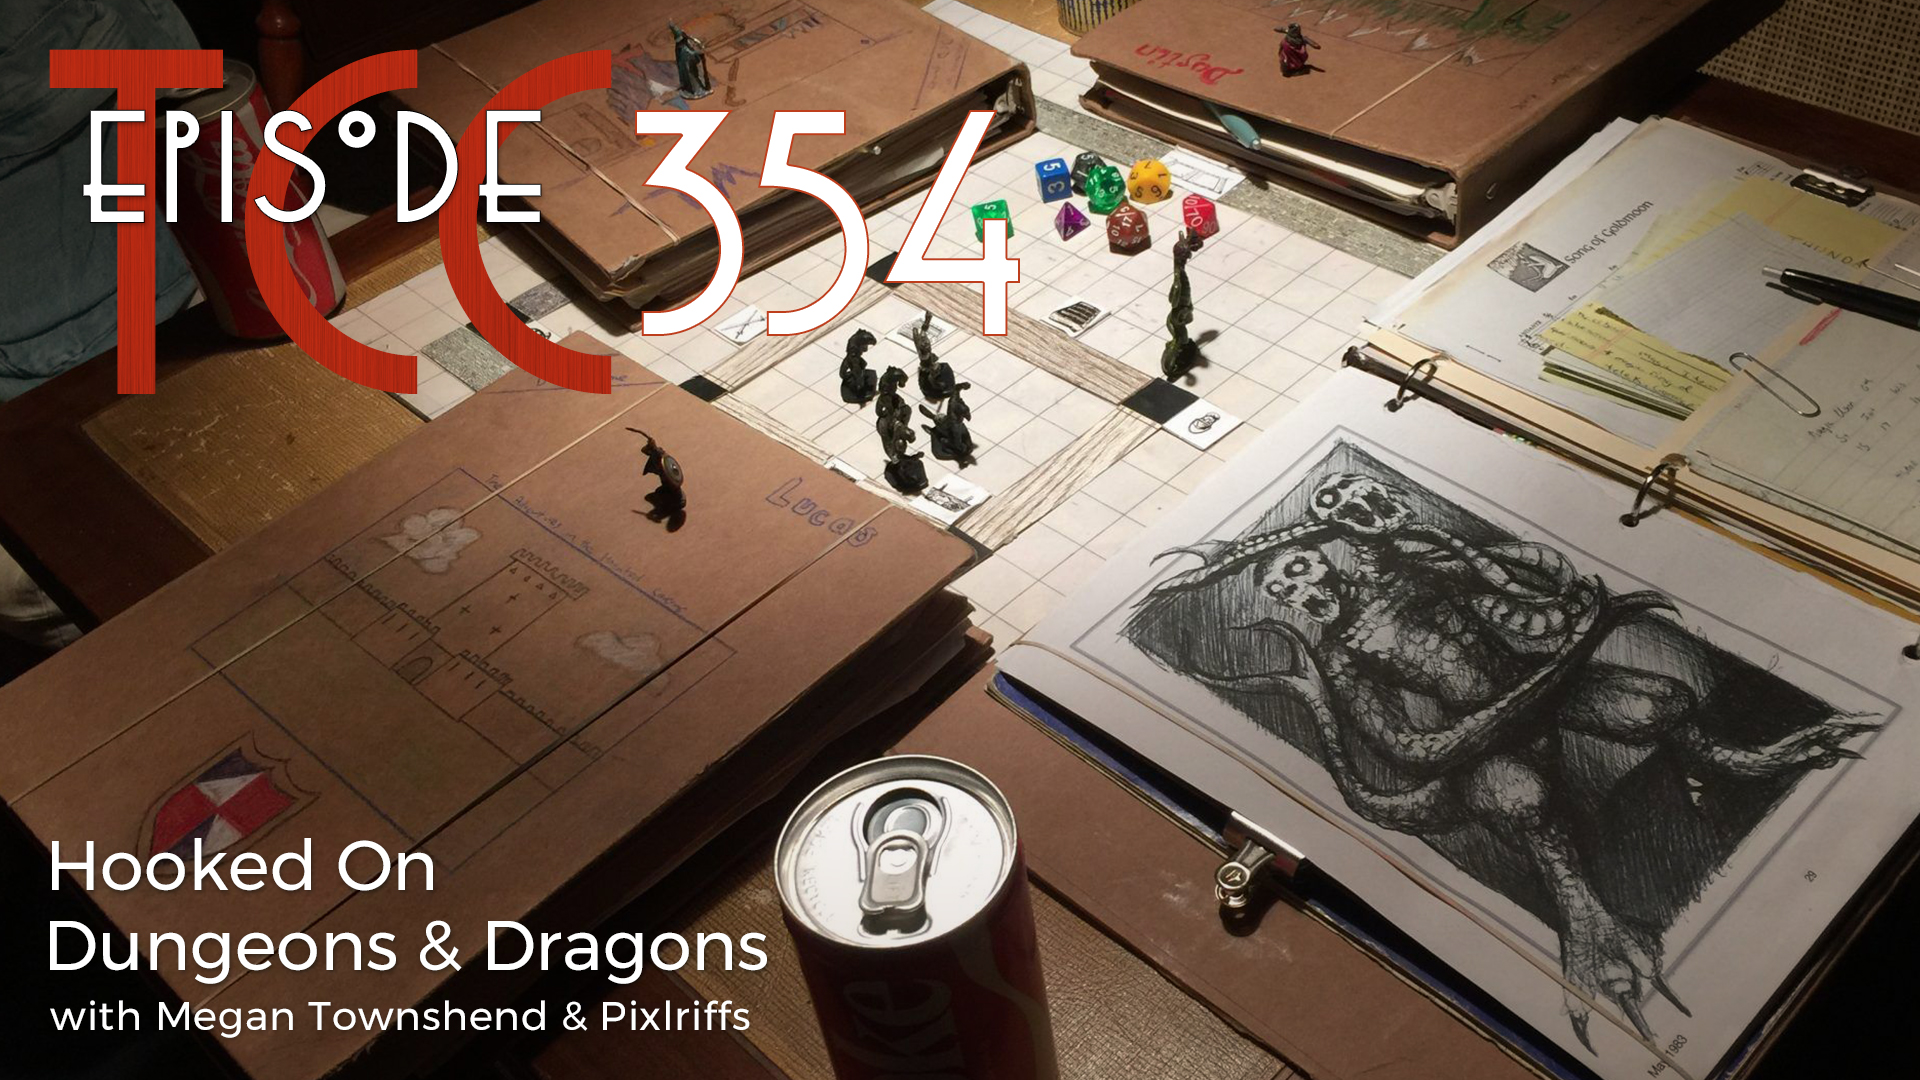 The Citadel Cafe 354: Hooked On Dungeons & Dragons